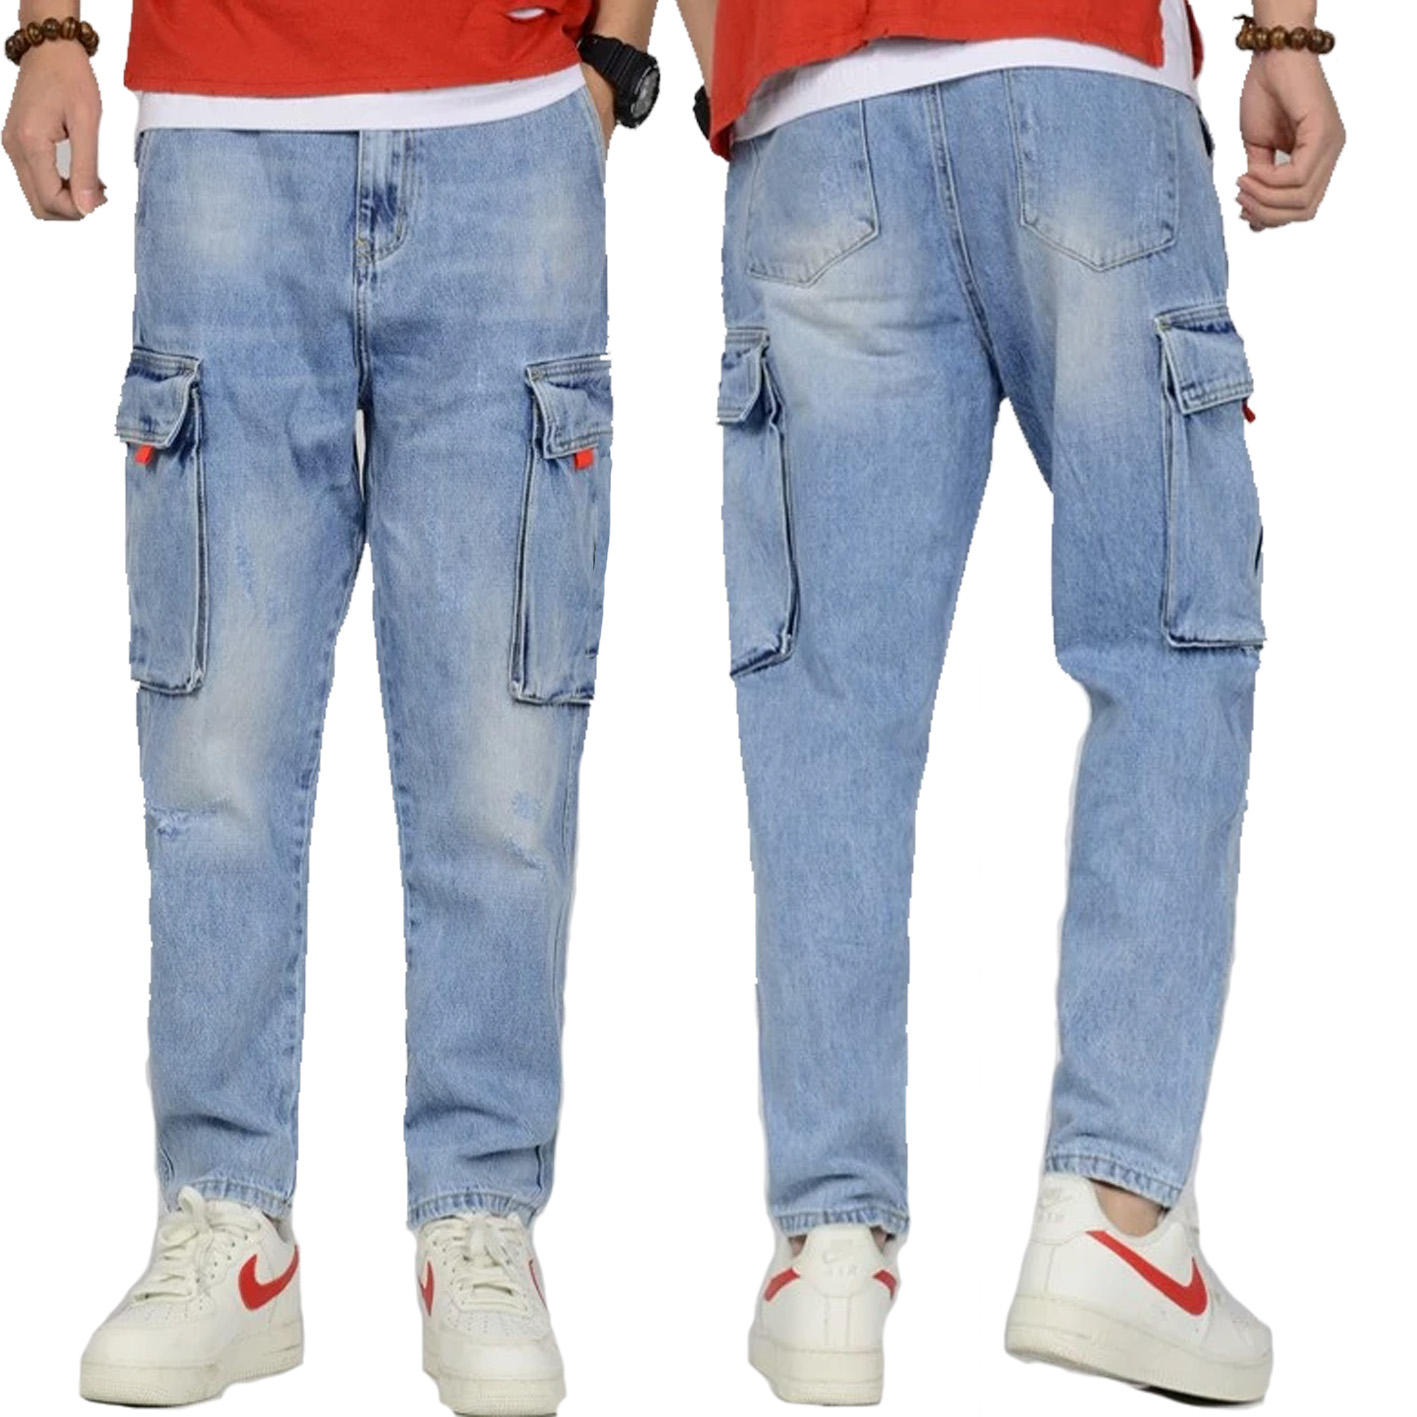 Wholesale Fashion Men's Stretch Light Blue Washed Jeans big Pocket Loose Baggy Hip Hop Cargo Jeans Men Tapered Pants